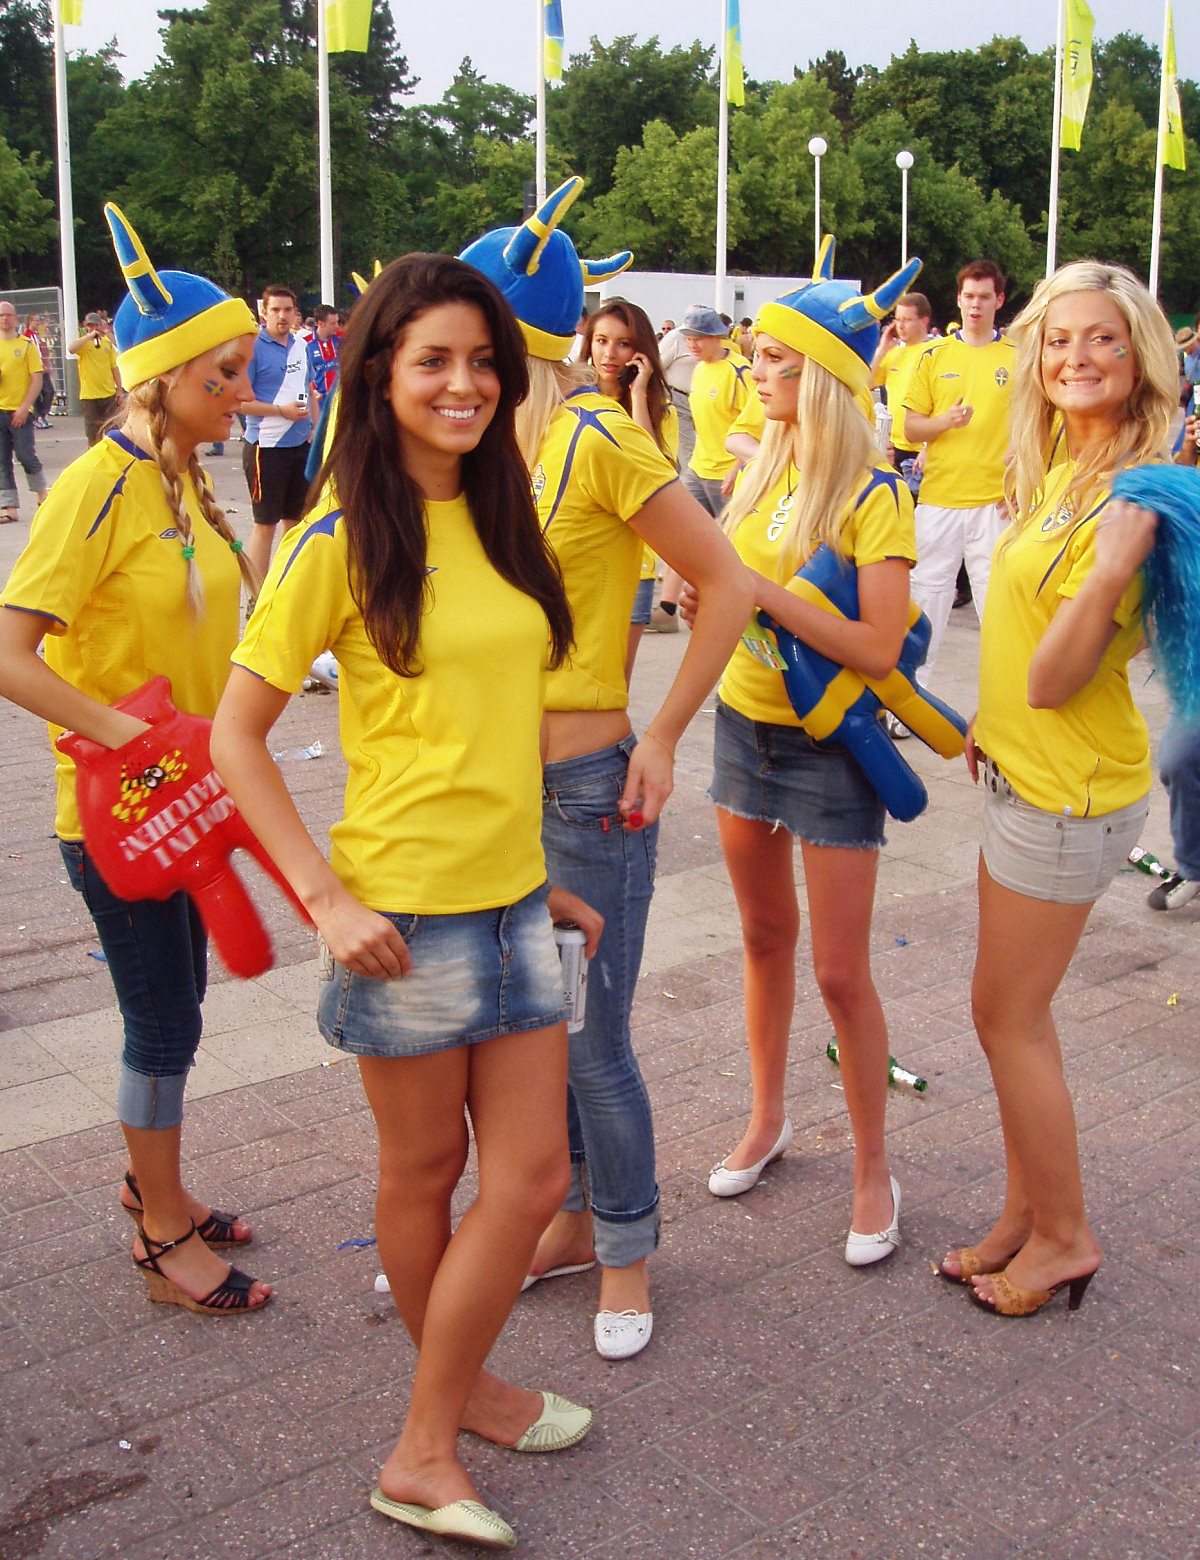 hot girls from sweden